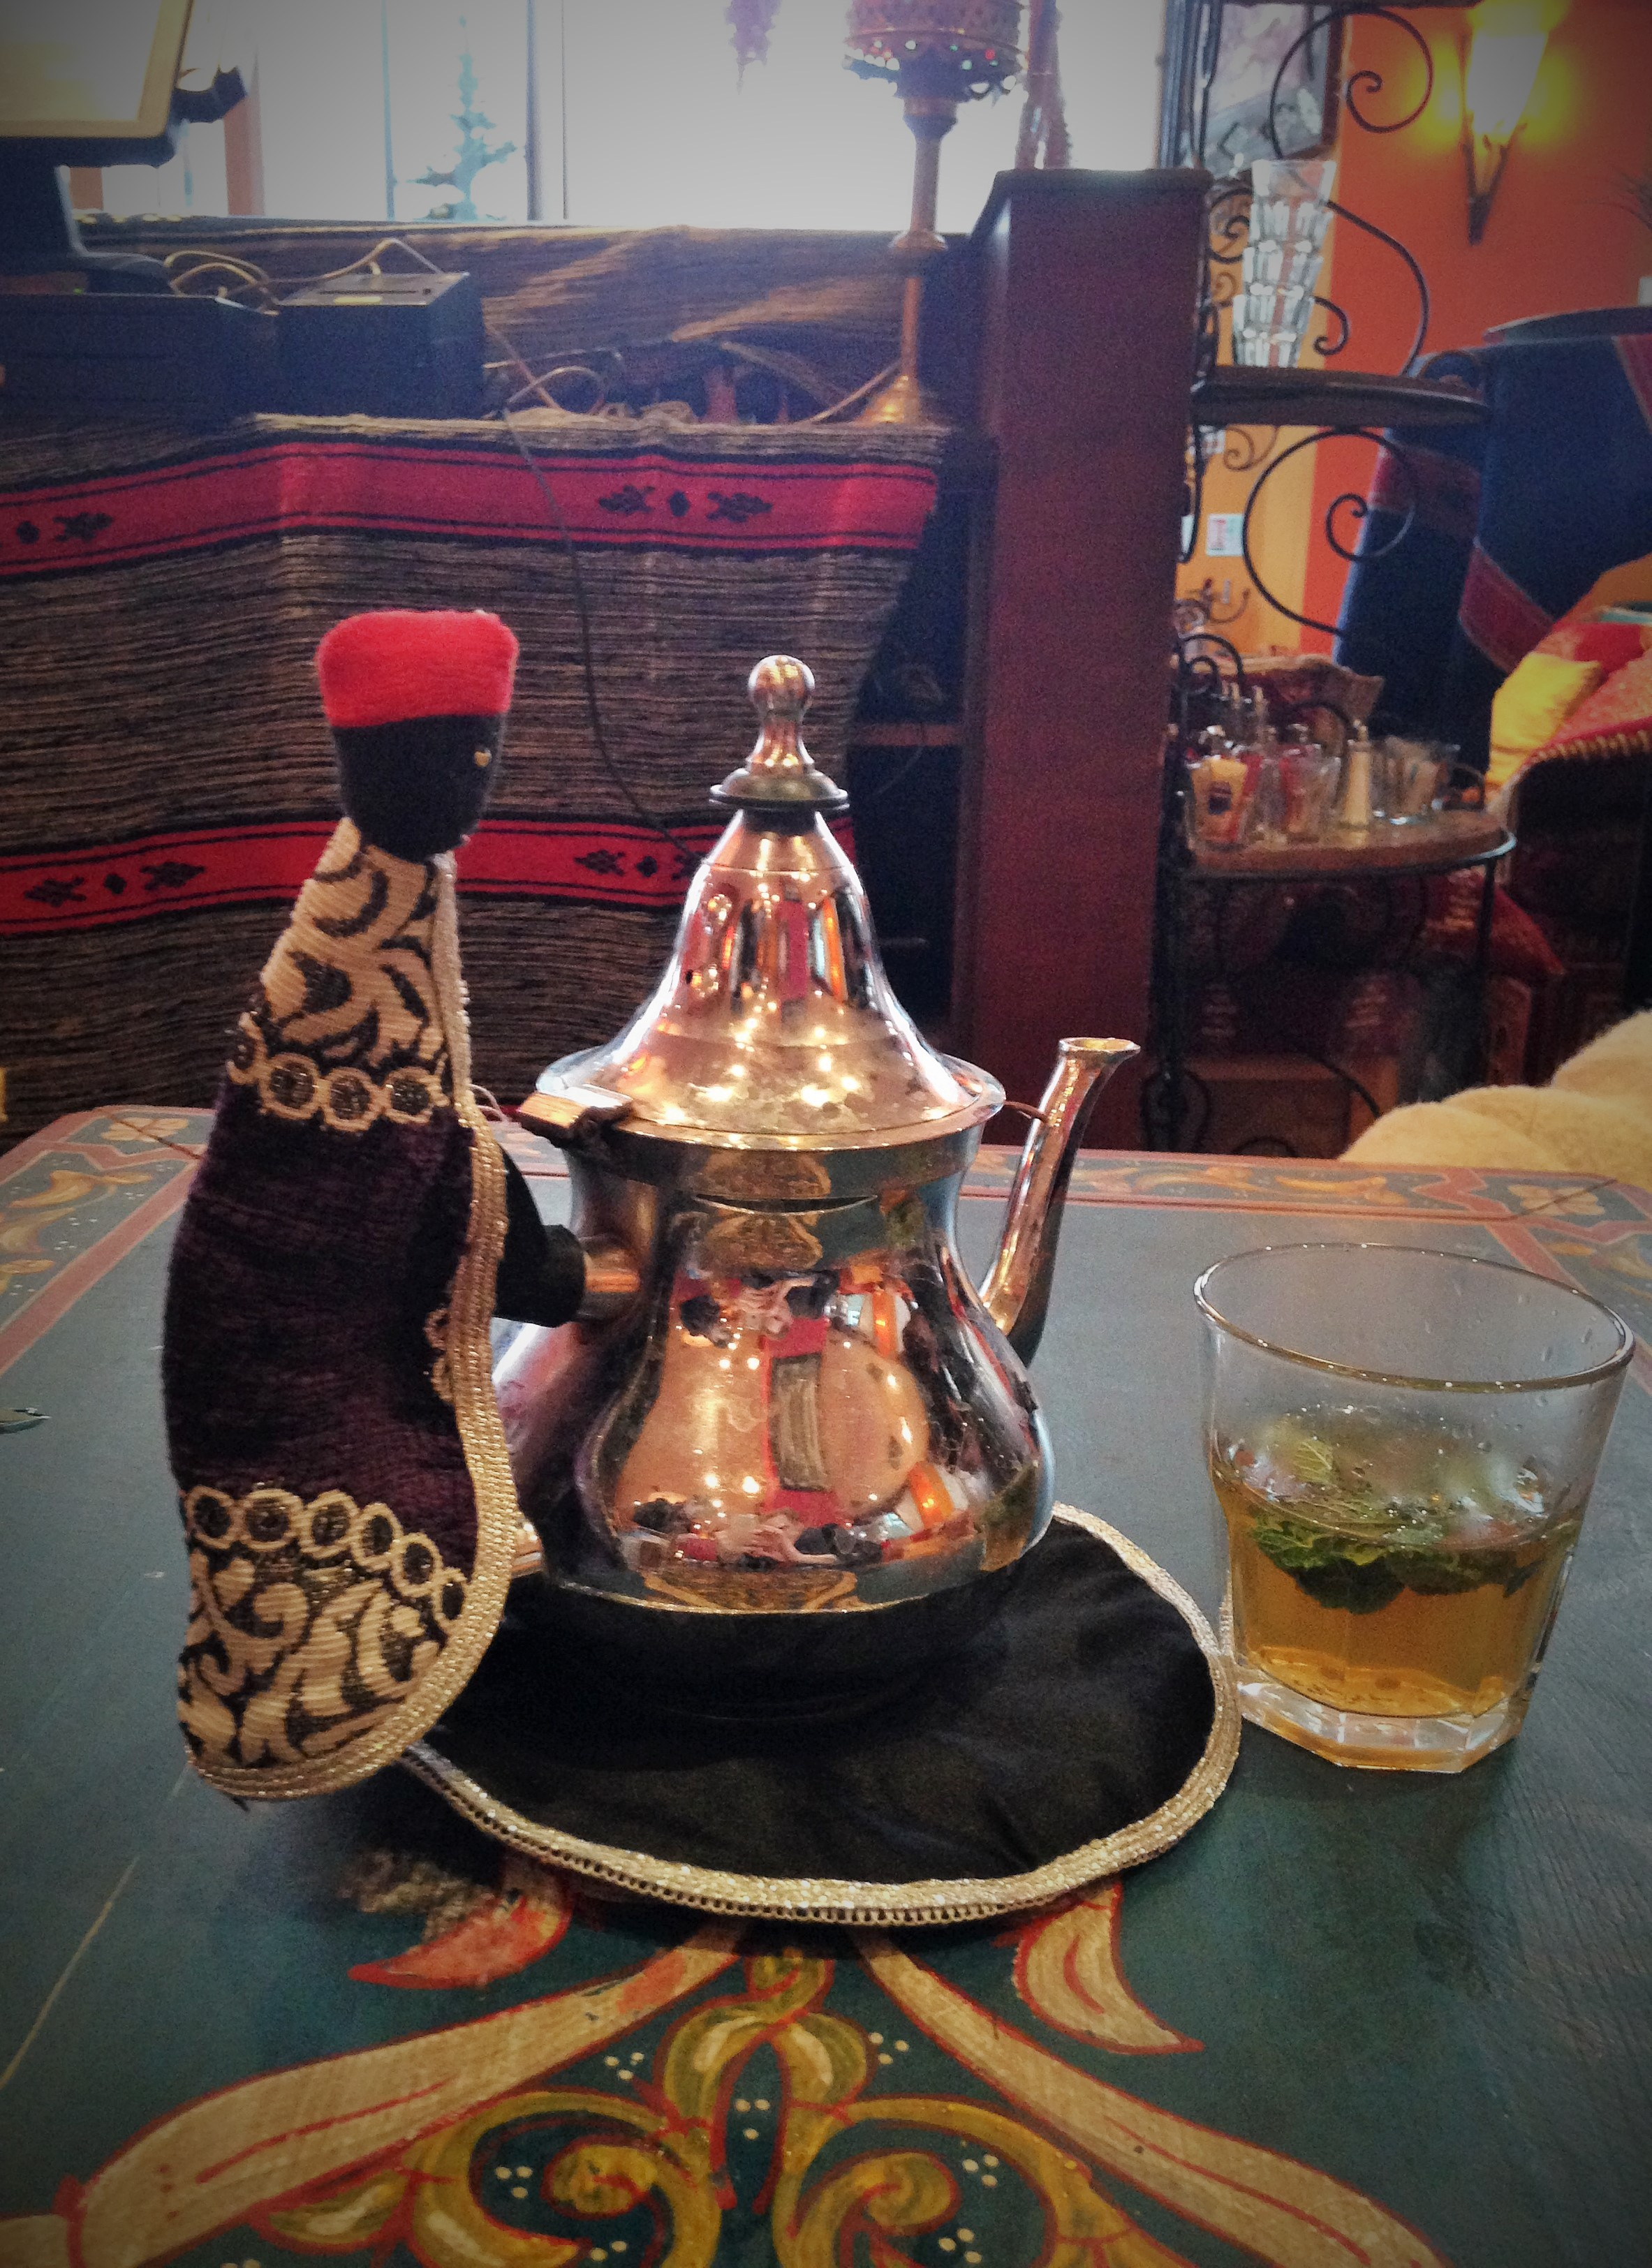 fresh mint tea at Souk River Lounge - kenningtonrunoff.com